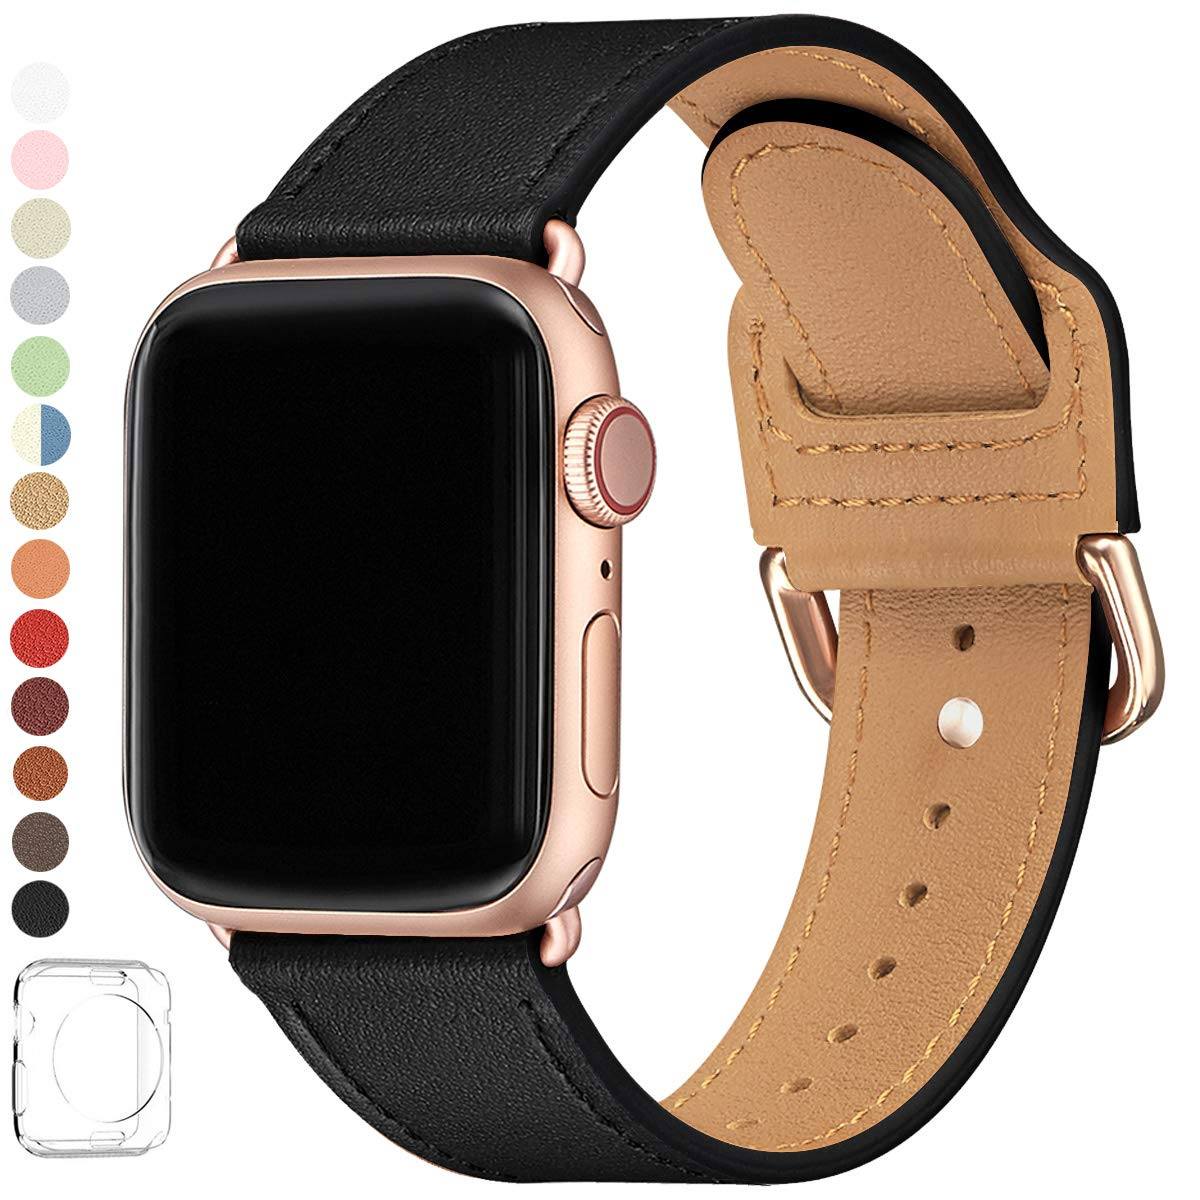 LOVLEOP Bands Compatible with Apple Watch Band 38mm 40mm 44mm 42mm, Top Grain Leather Watch Strap for iWatch Series 5 Series 4 Series 3 Series 2 Series 1 (Black+Rose Gold Connector, 38mm 40mm) by LOVLEOP